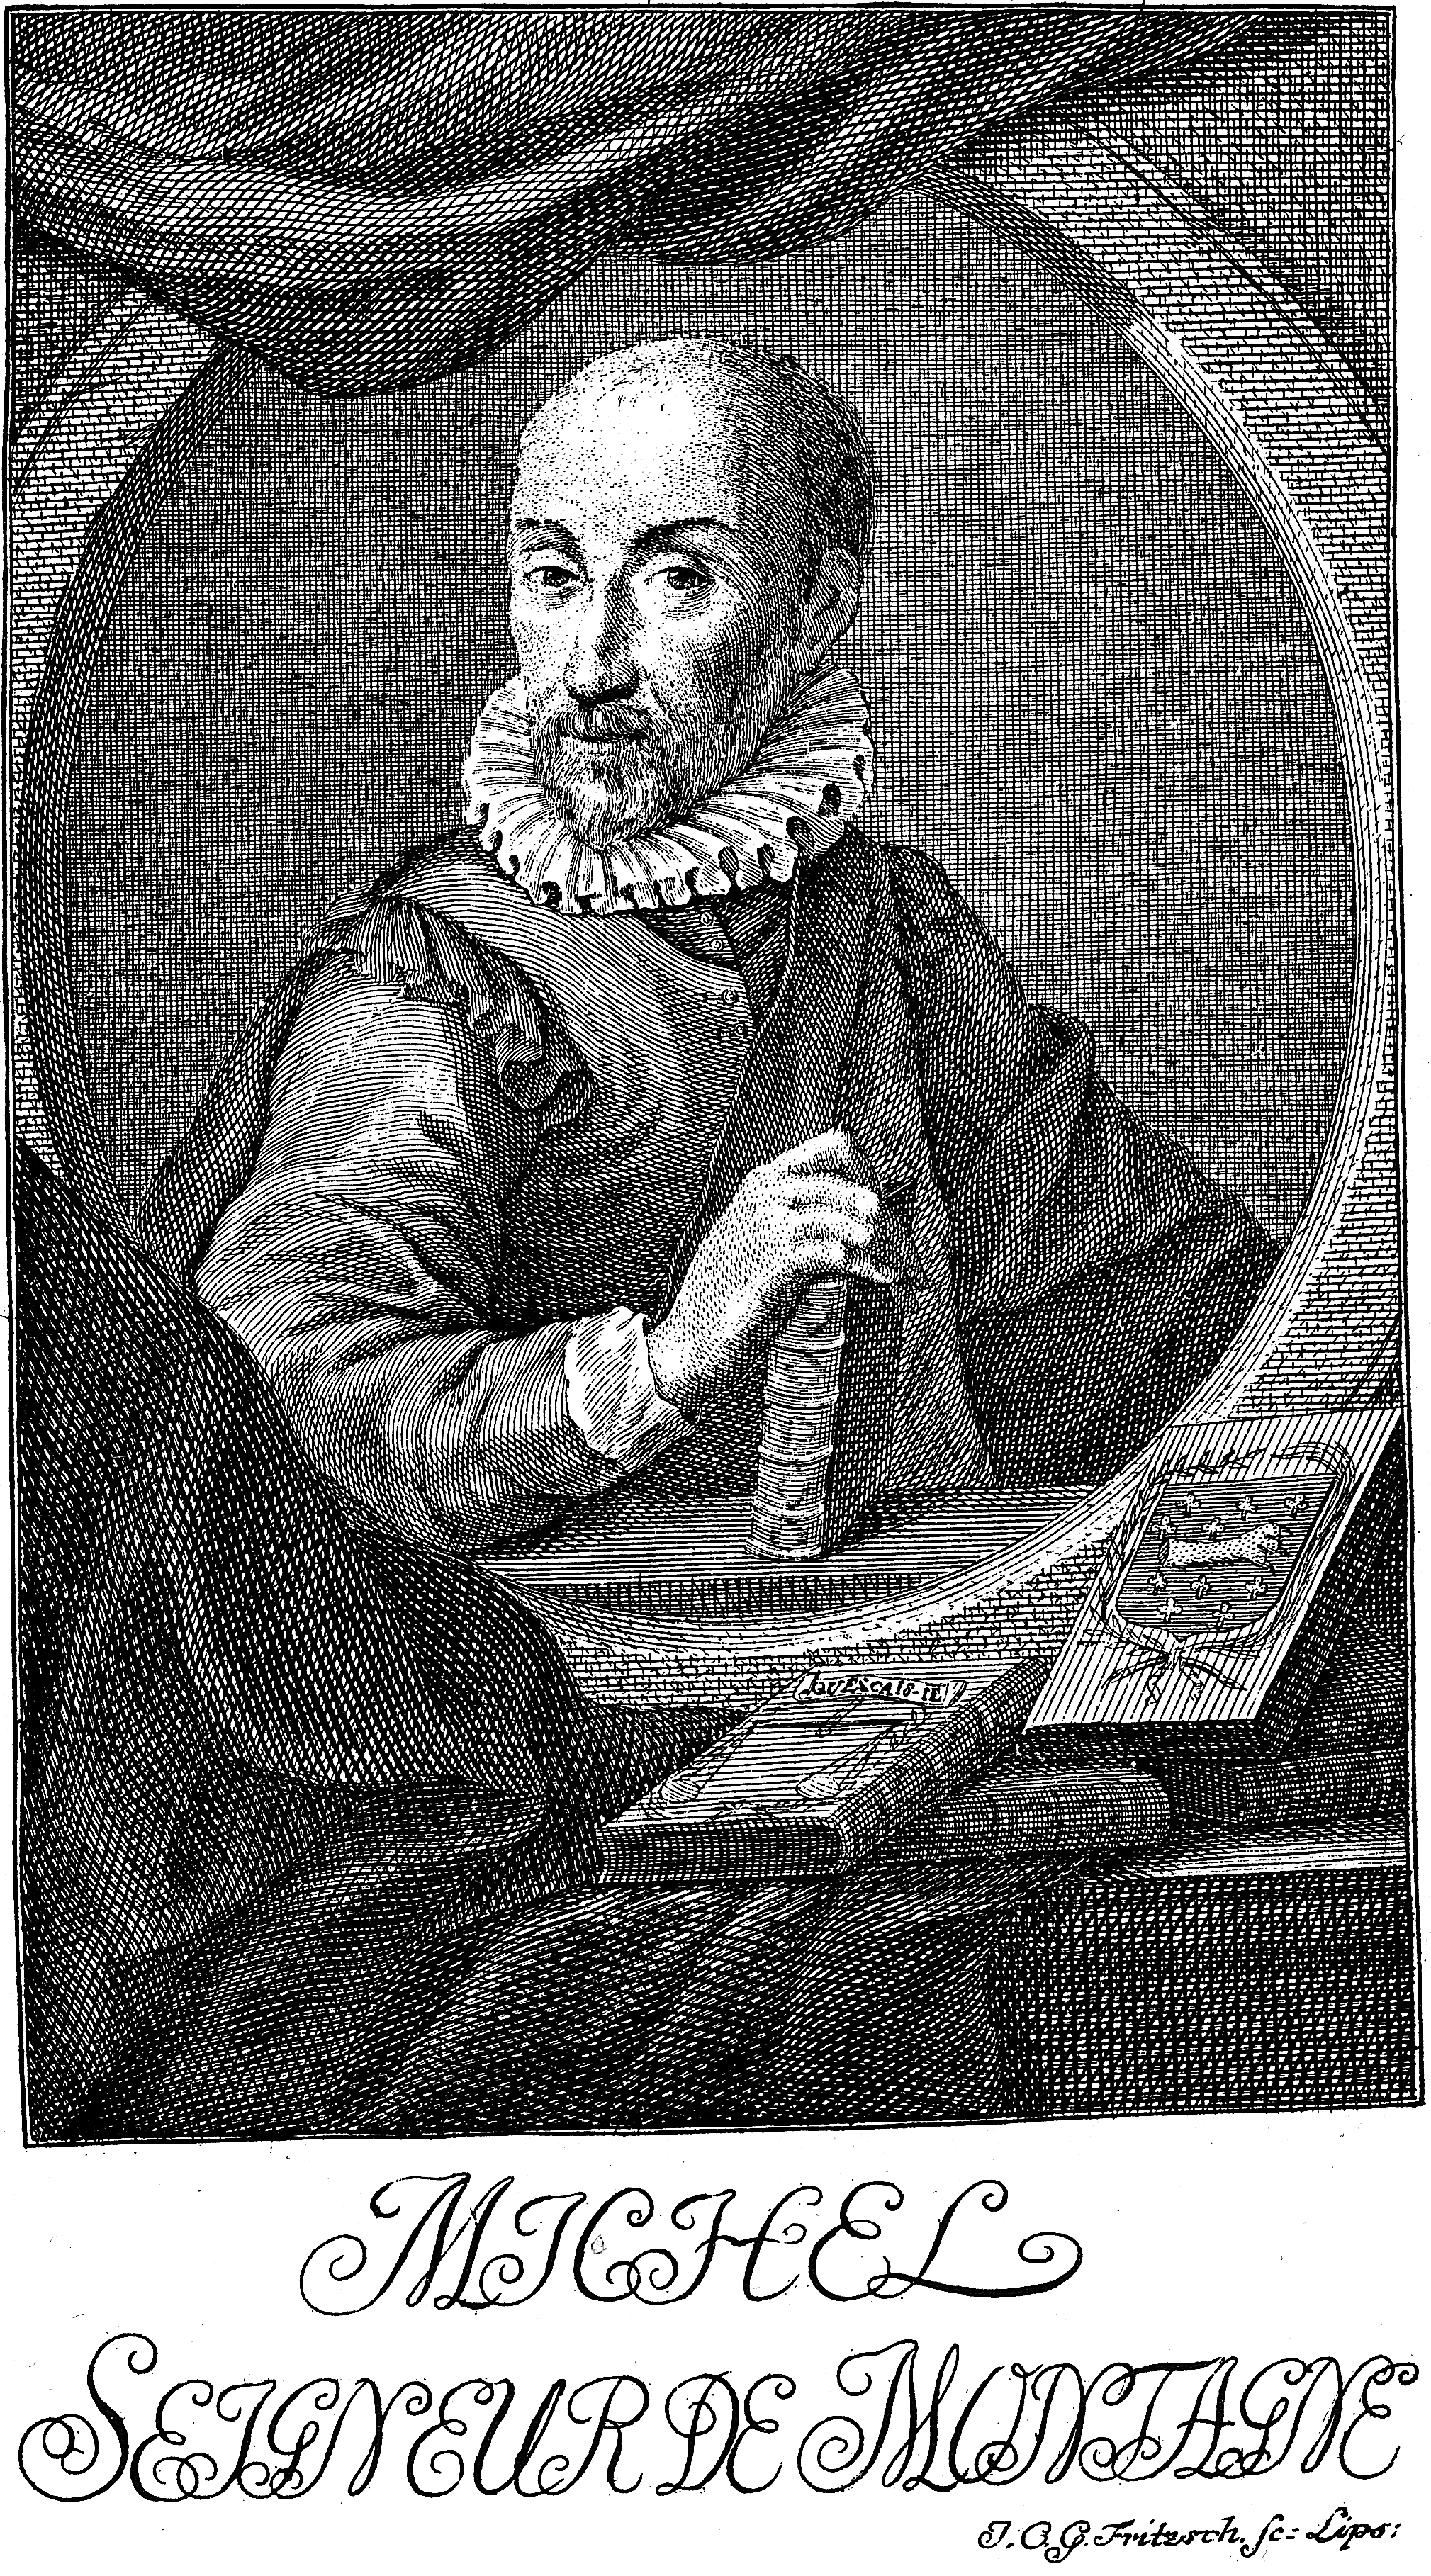 project gutenbergs the essays of montaigne complete by michel de montaigne Michel de montaigne the complete essays digitized and proofread by project gutenberg the complete essays michel montaigne google books, michel de montaigne (1533.